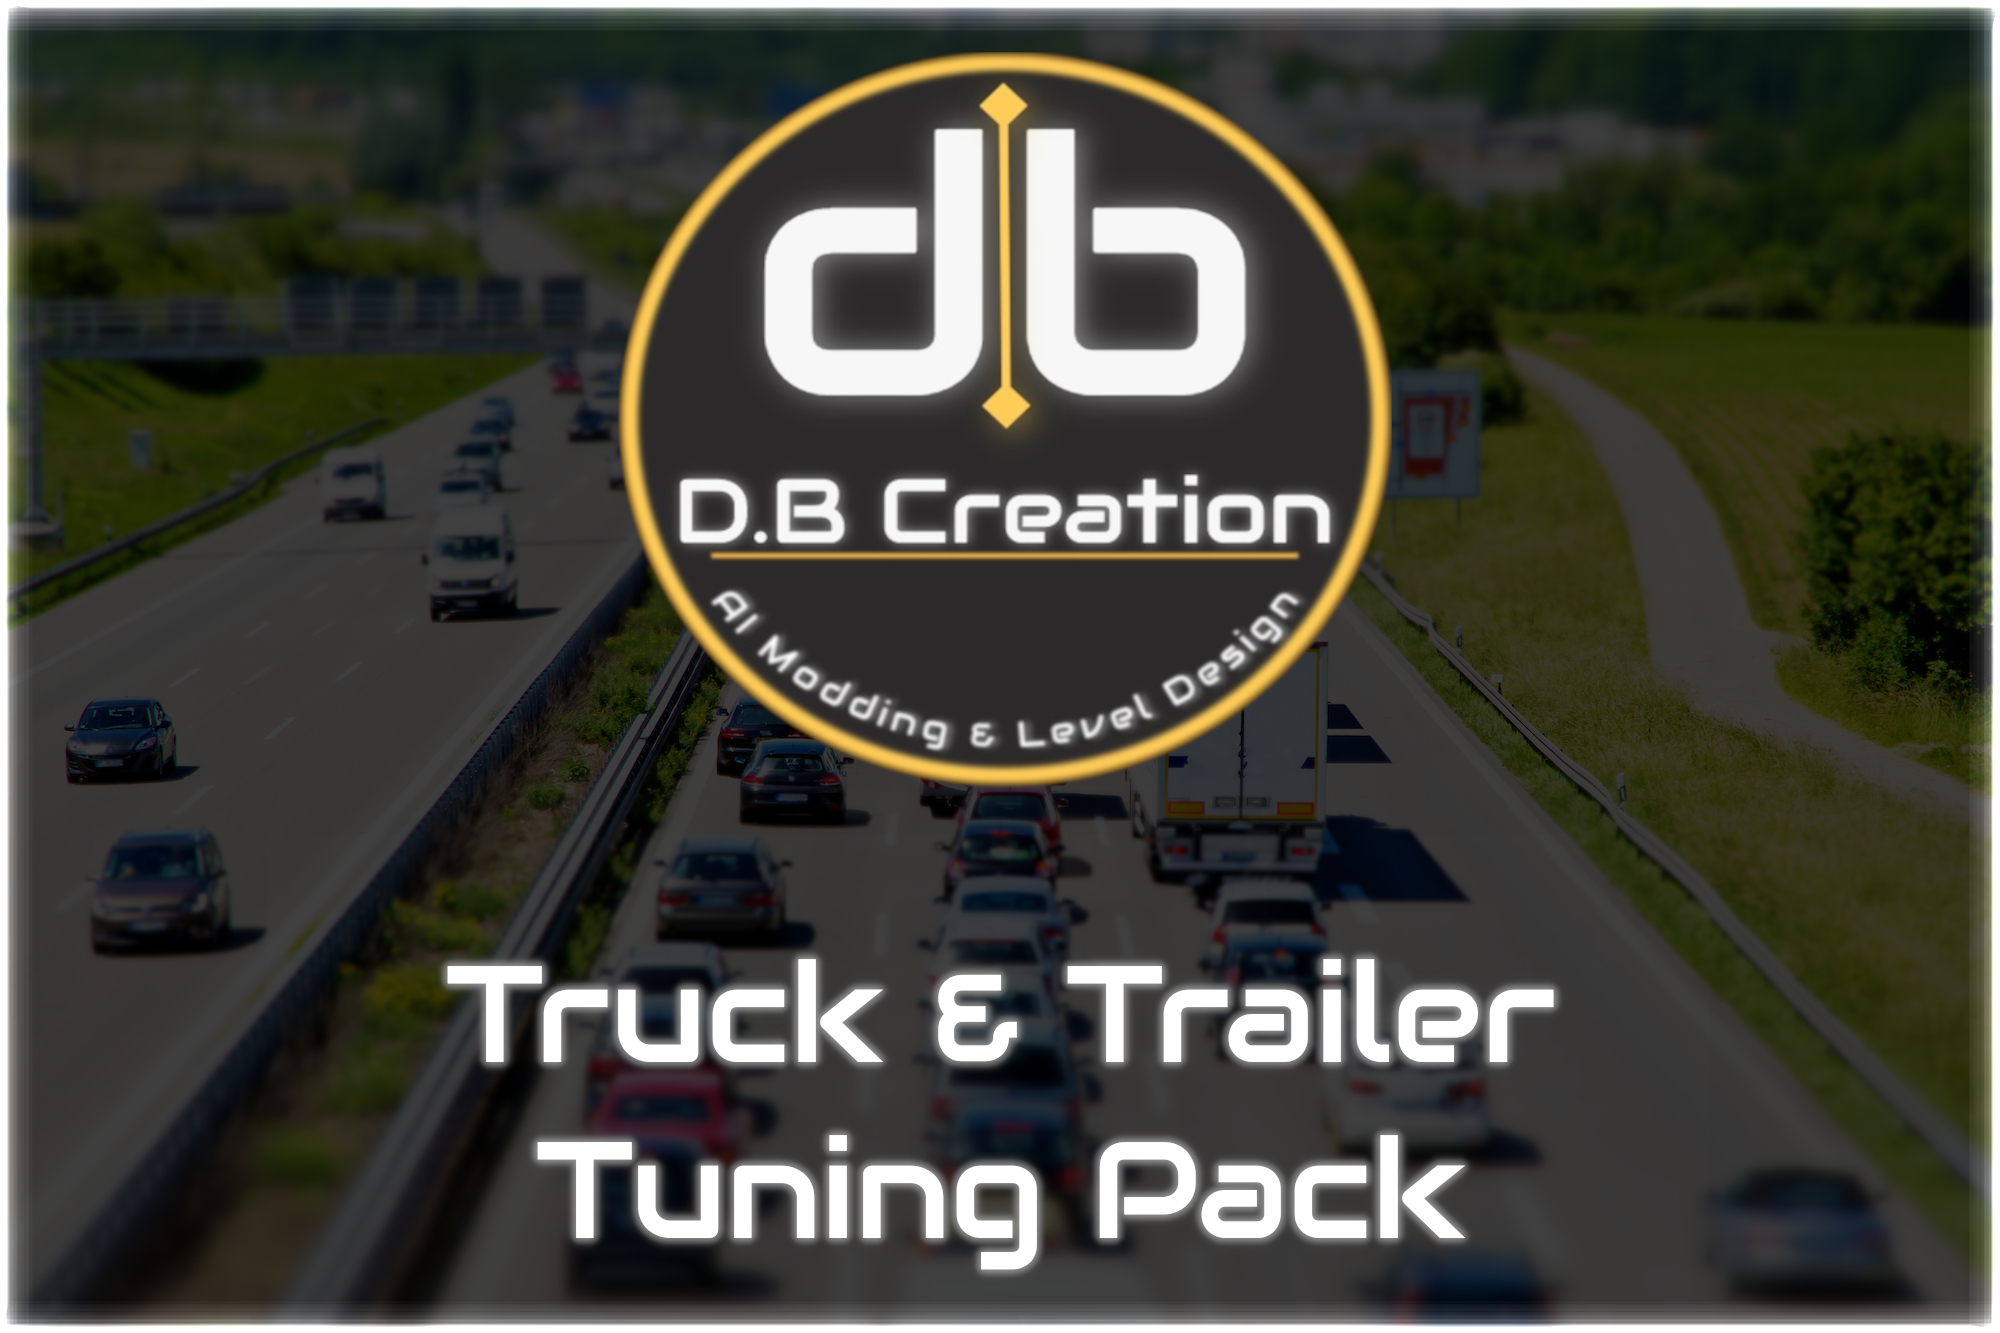 Truck & Trailer Tuning Pack